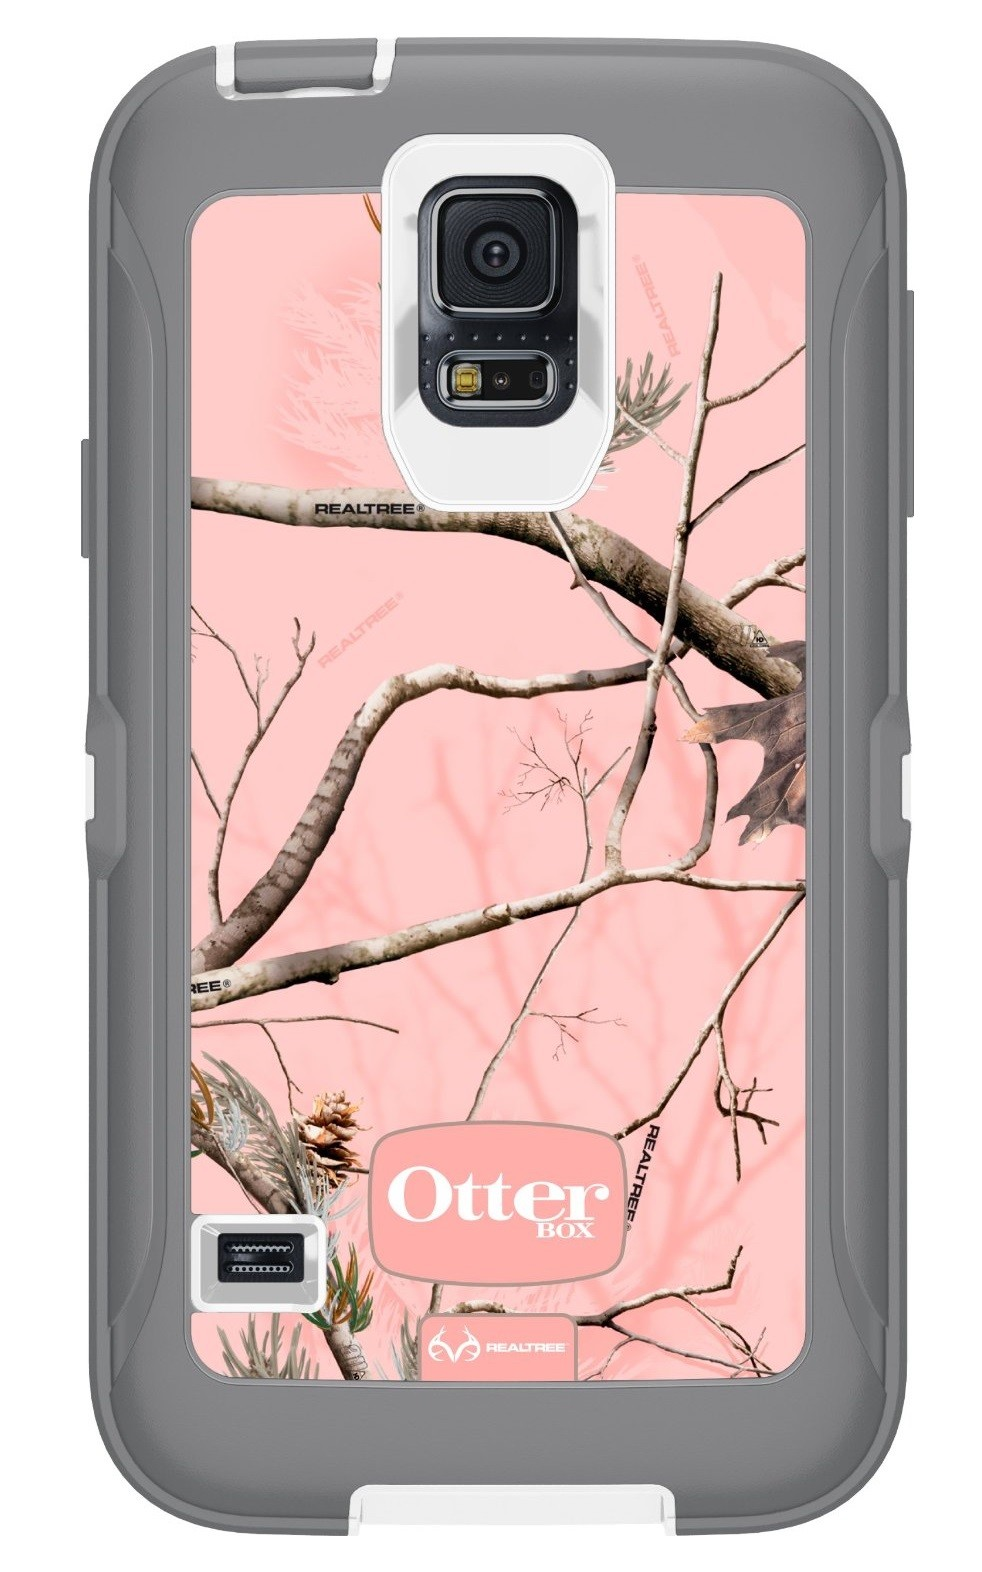 OtterBox Defender Case for Samsung Galaxy S5 - Real Tree Pink (White/Gunmetal Grey Ap Pink)